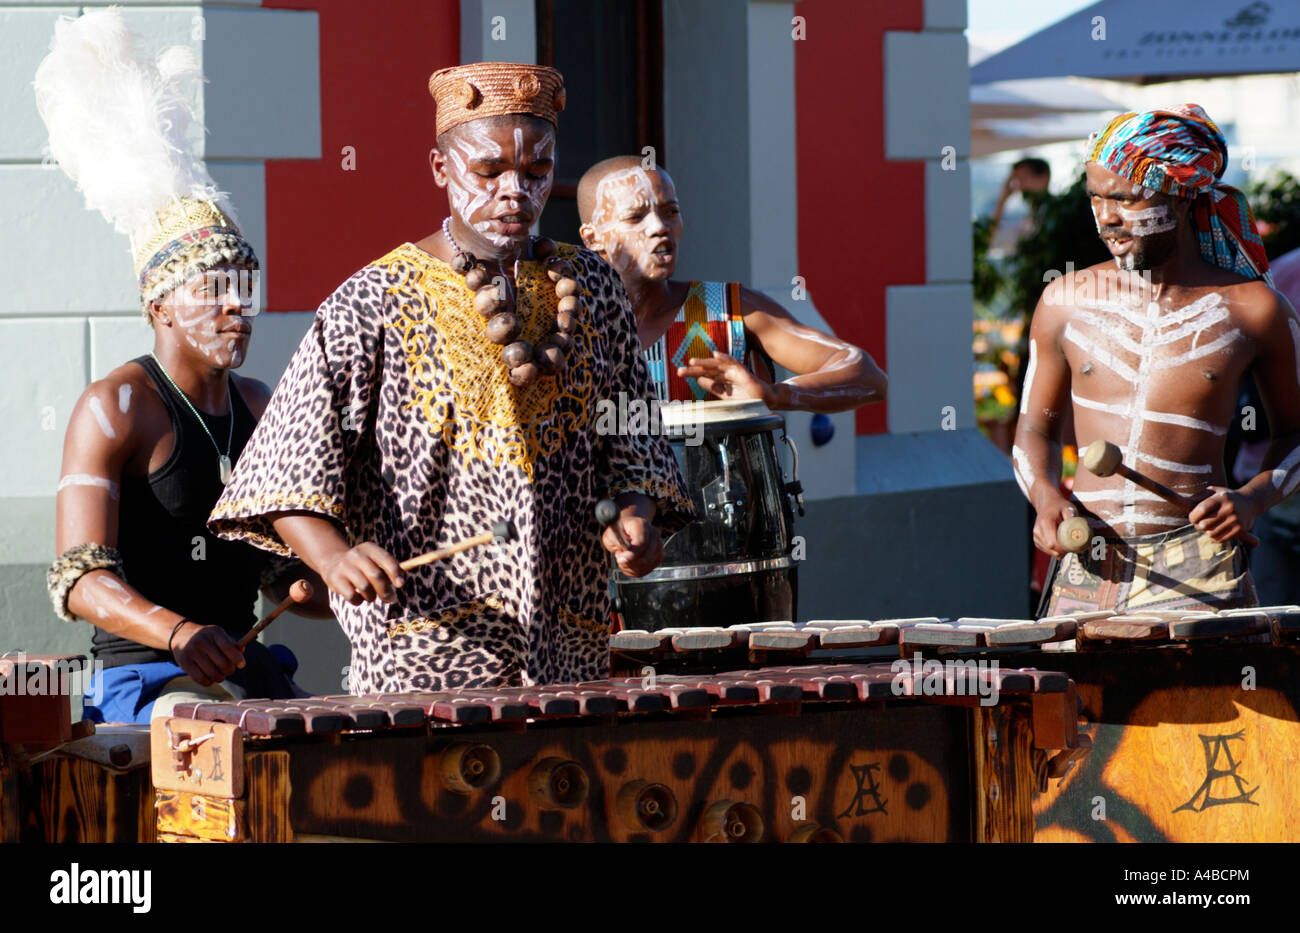 African musicians with painted faces busking Cape Town South Africa RSA - Stock Image